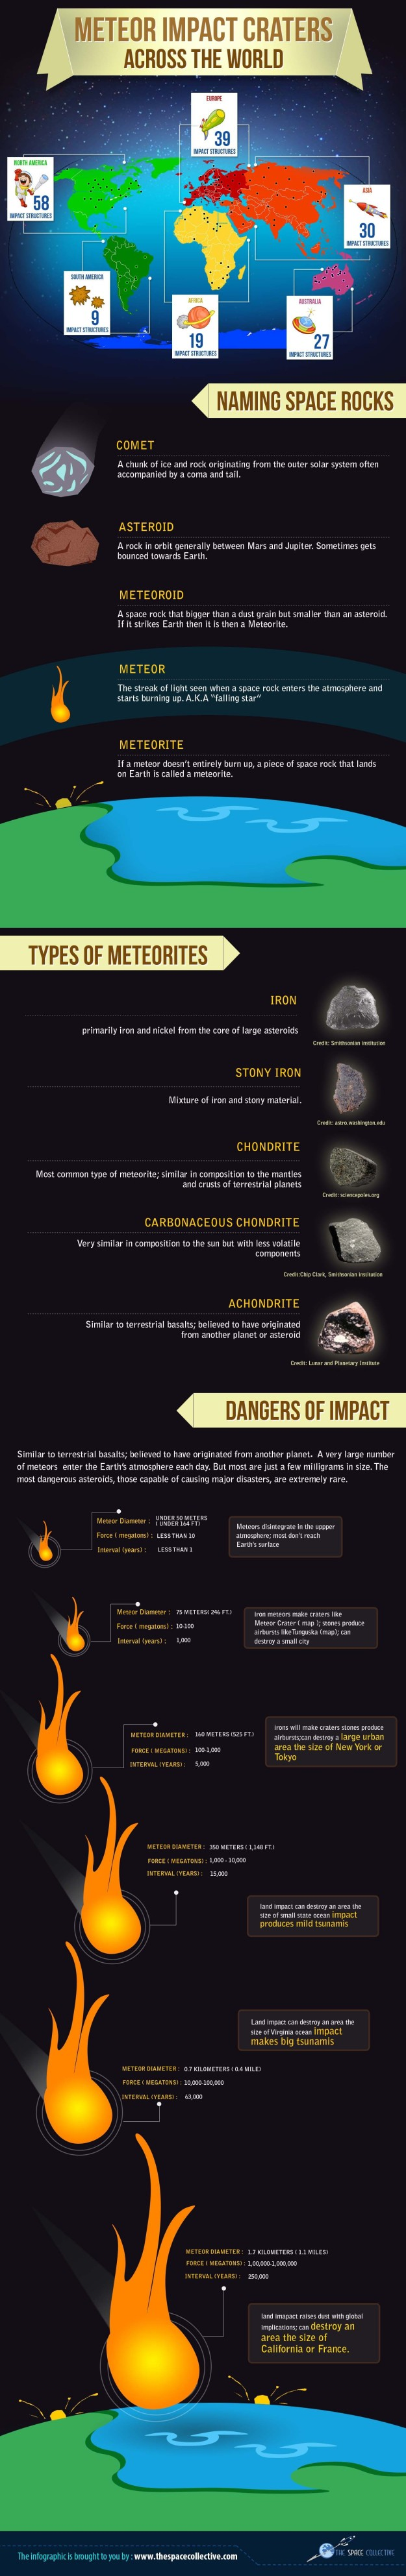 Meteor Impact Craters around the World